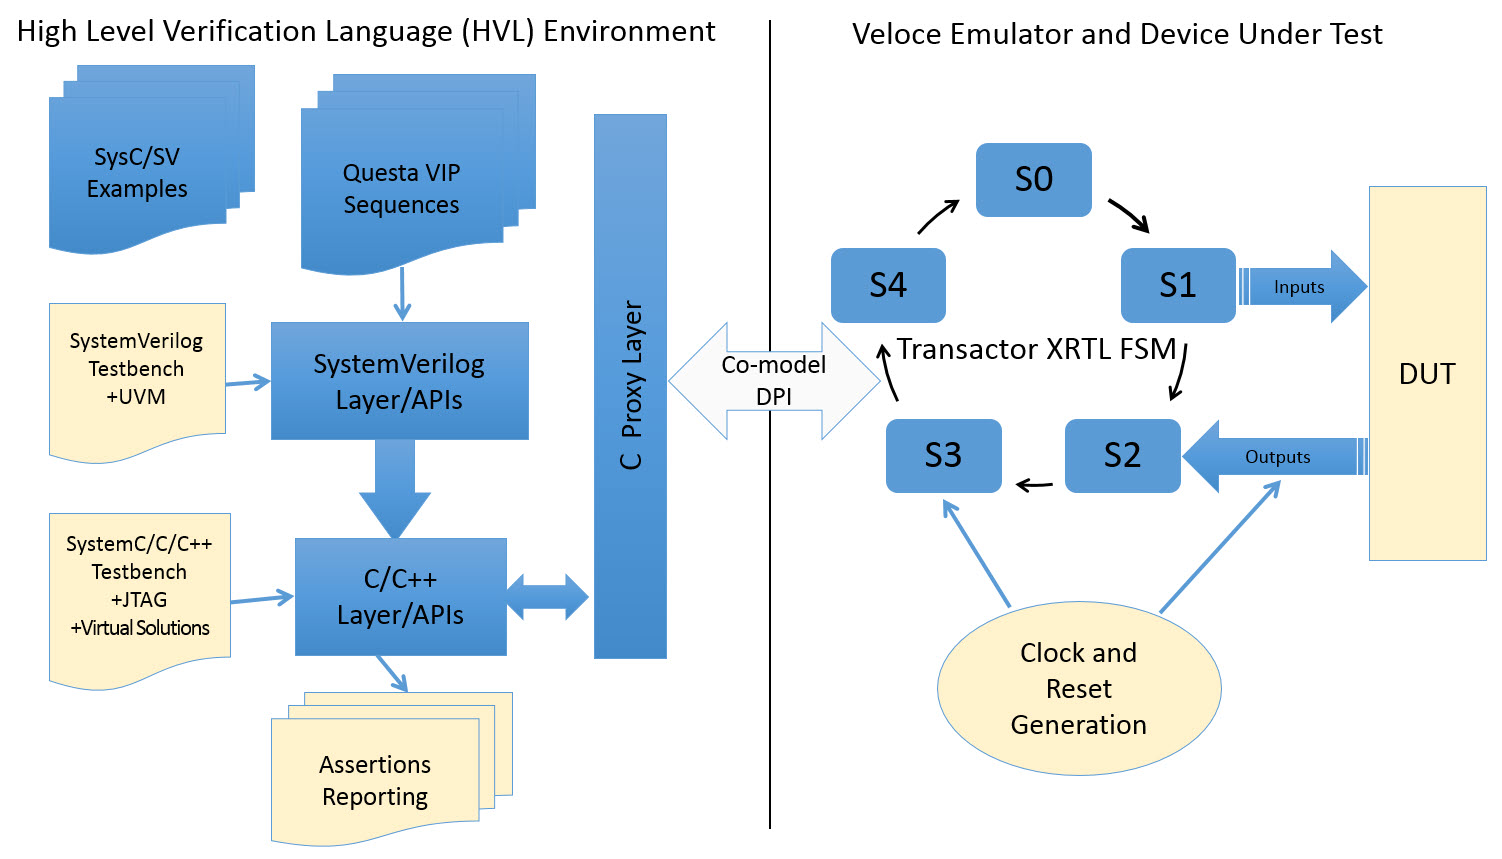 Semiconductor Engineering Co Modeling Takes Emulation To The Level 2 Block Diagram Figure Typical Solution